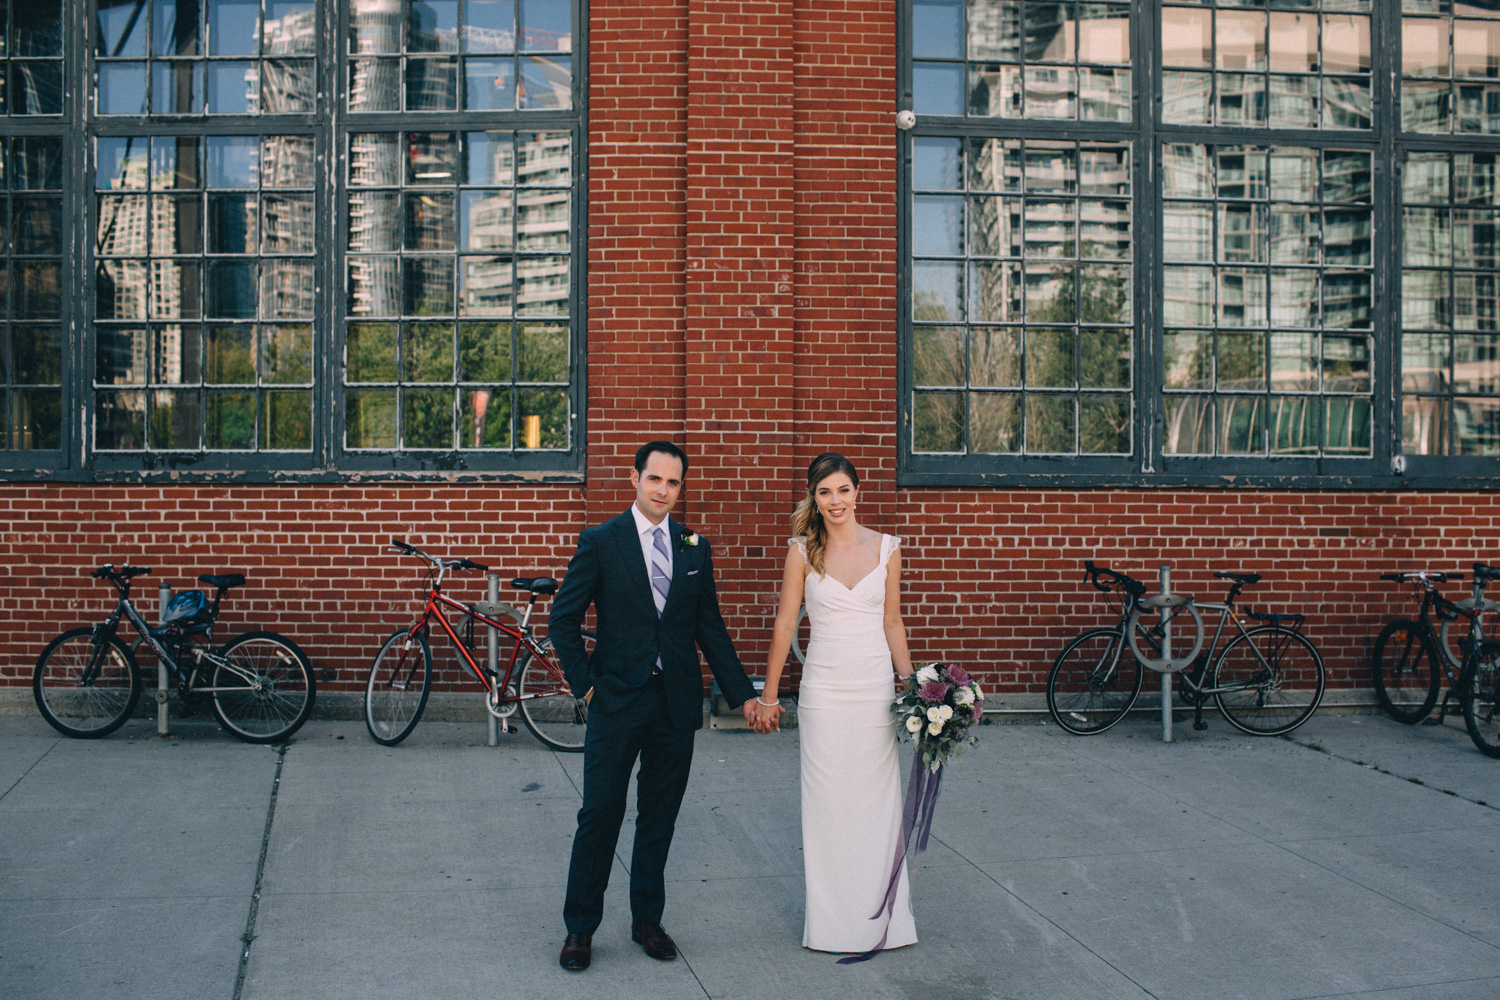 steam-whistle-brewery-wedding-photos-toronto-wedding-photography-by-sam-wong-of-artanis-collective_01001